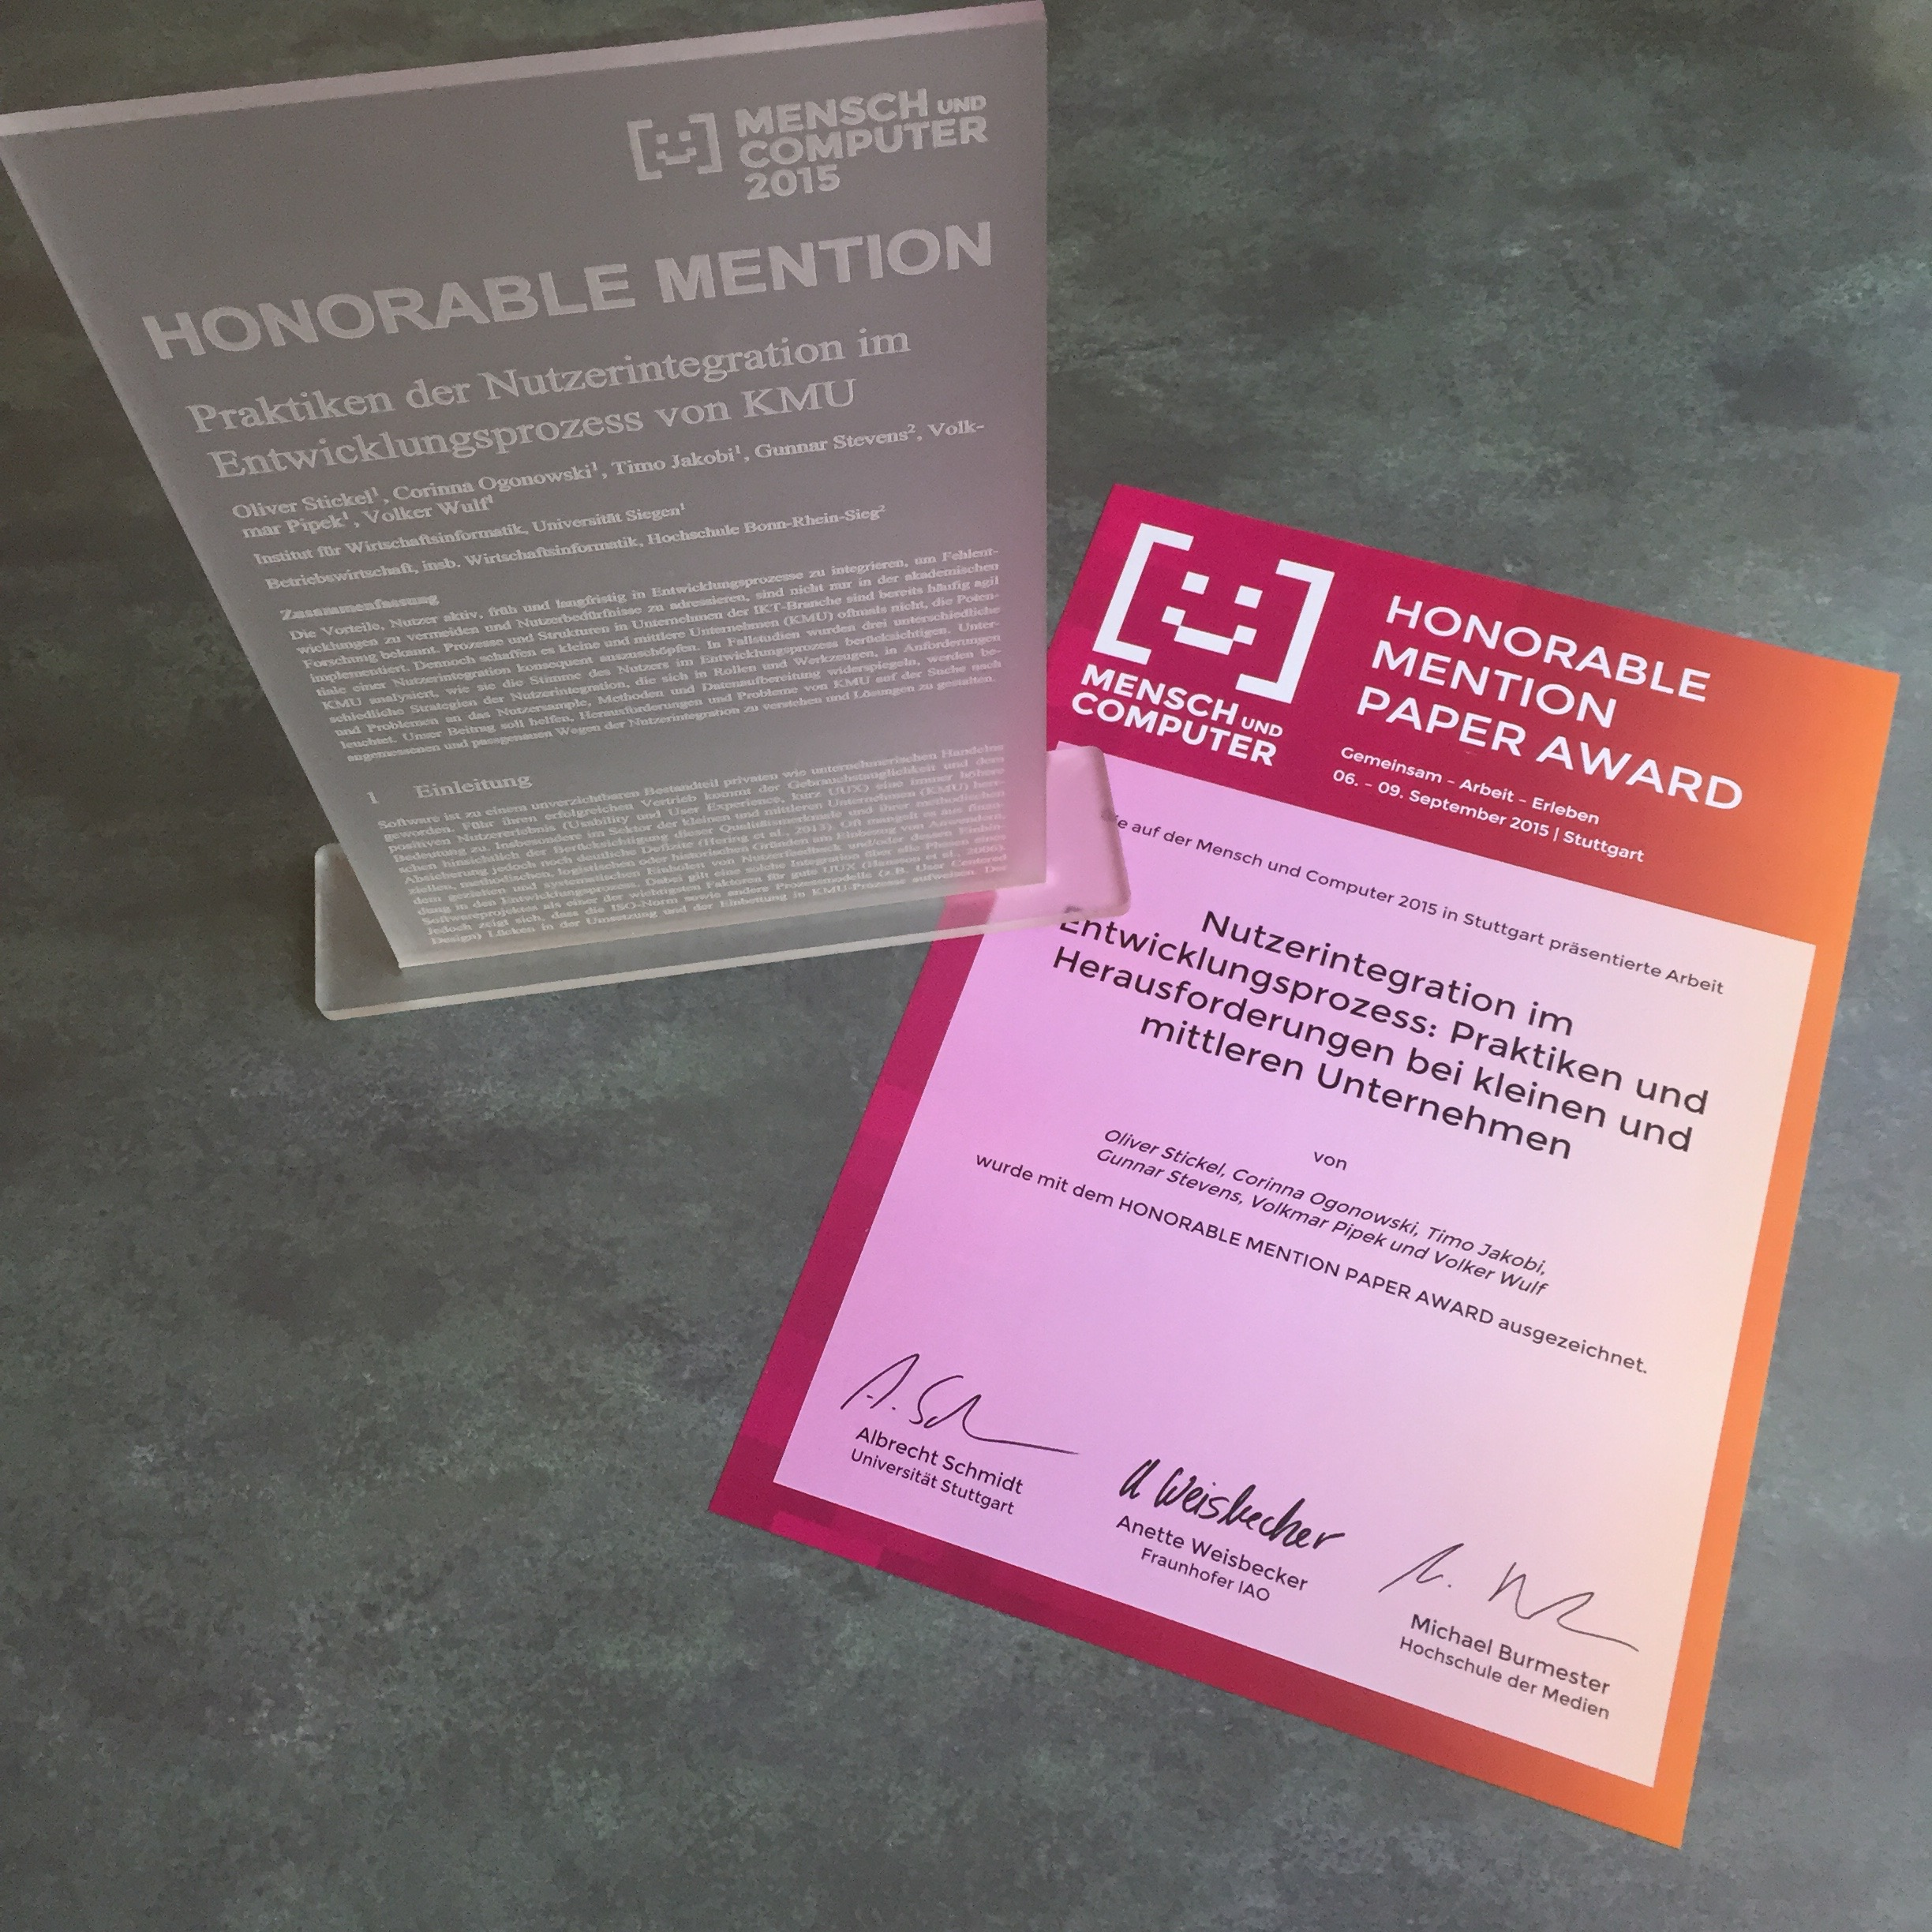 MuC_Honorable-Mention-Paper-Award